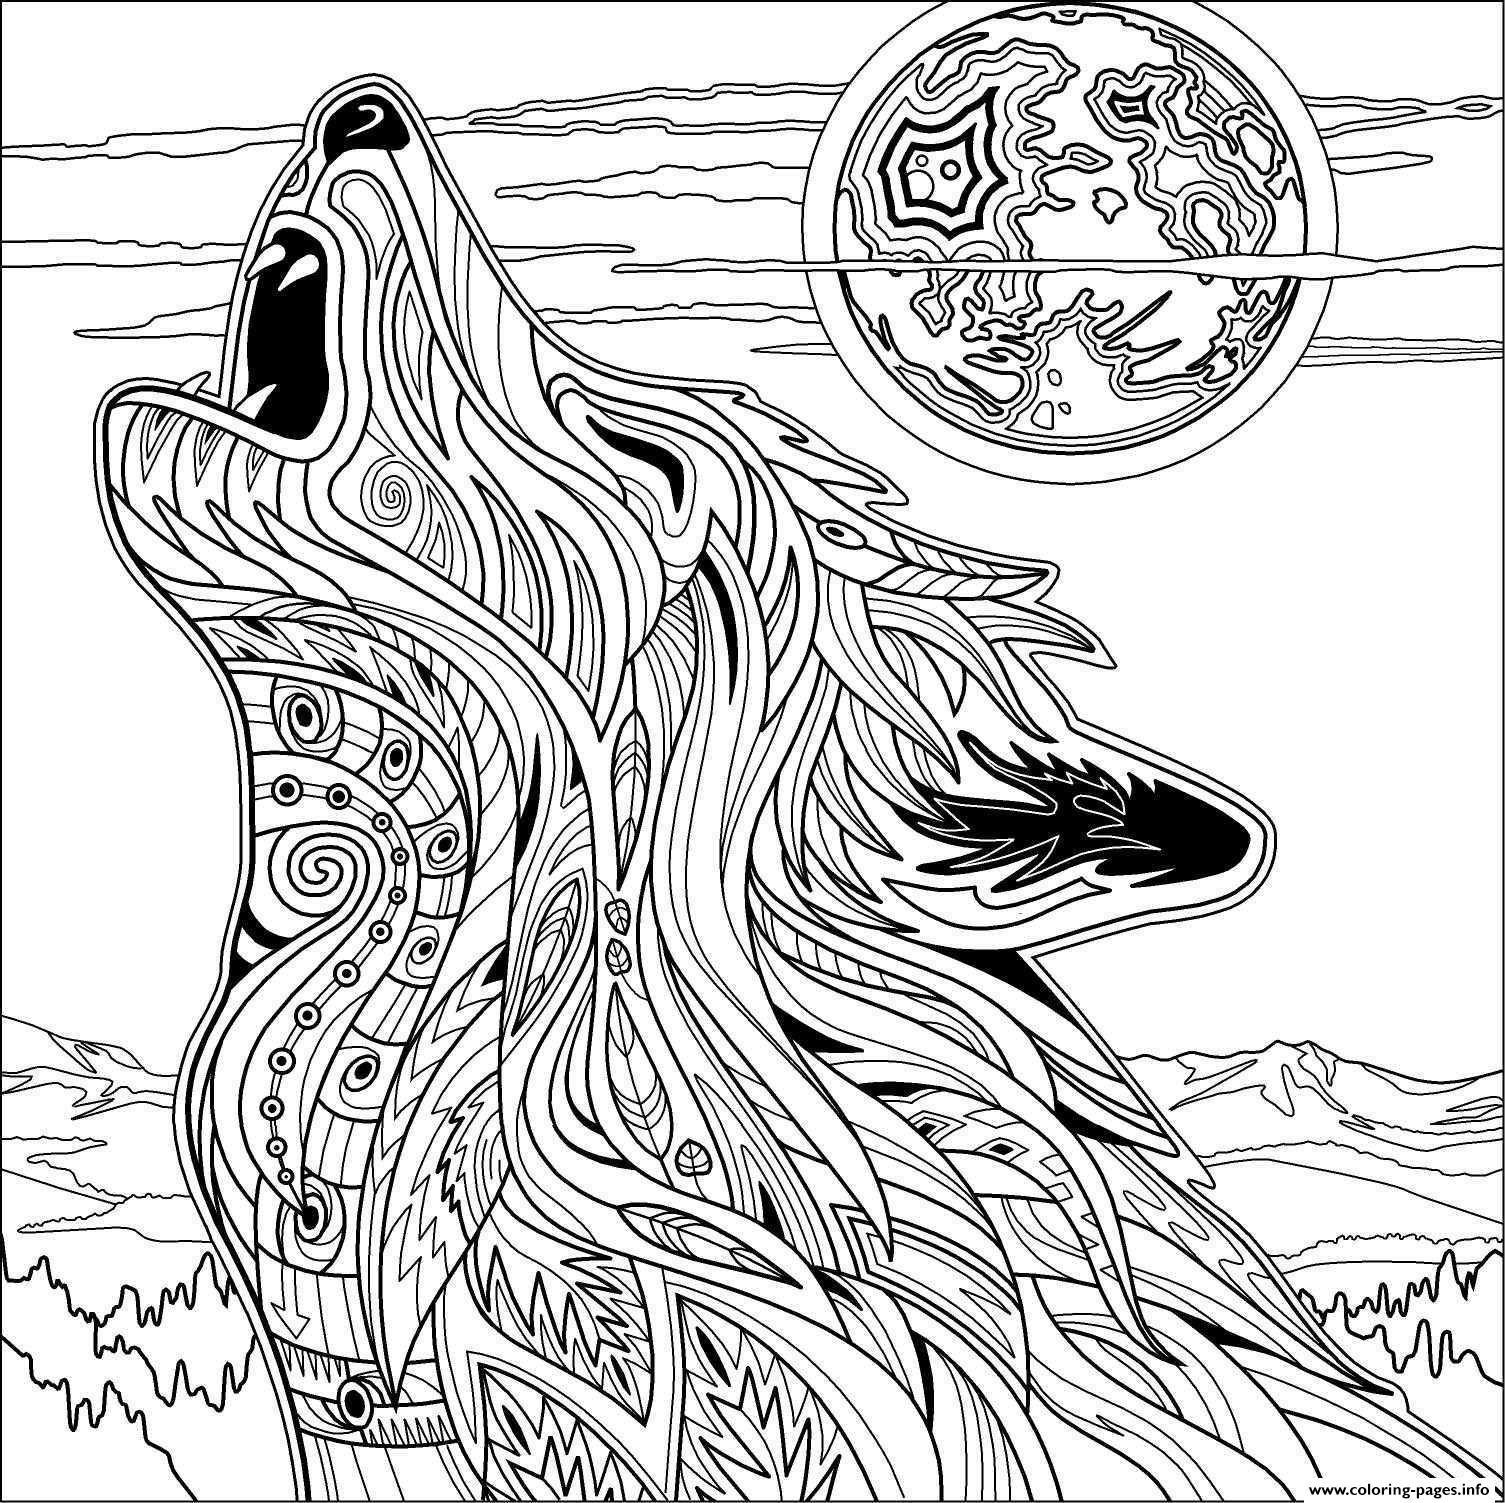 wolf coloring pages for adults get this wolf coloring pages for adults free printable 96993 coloring adults wolf for pages